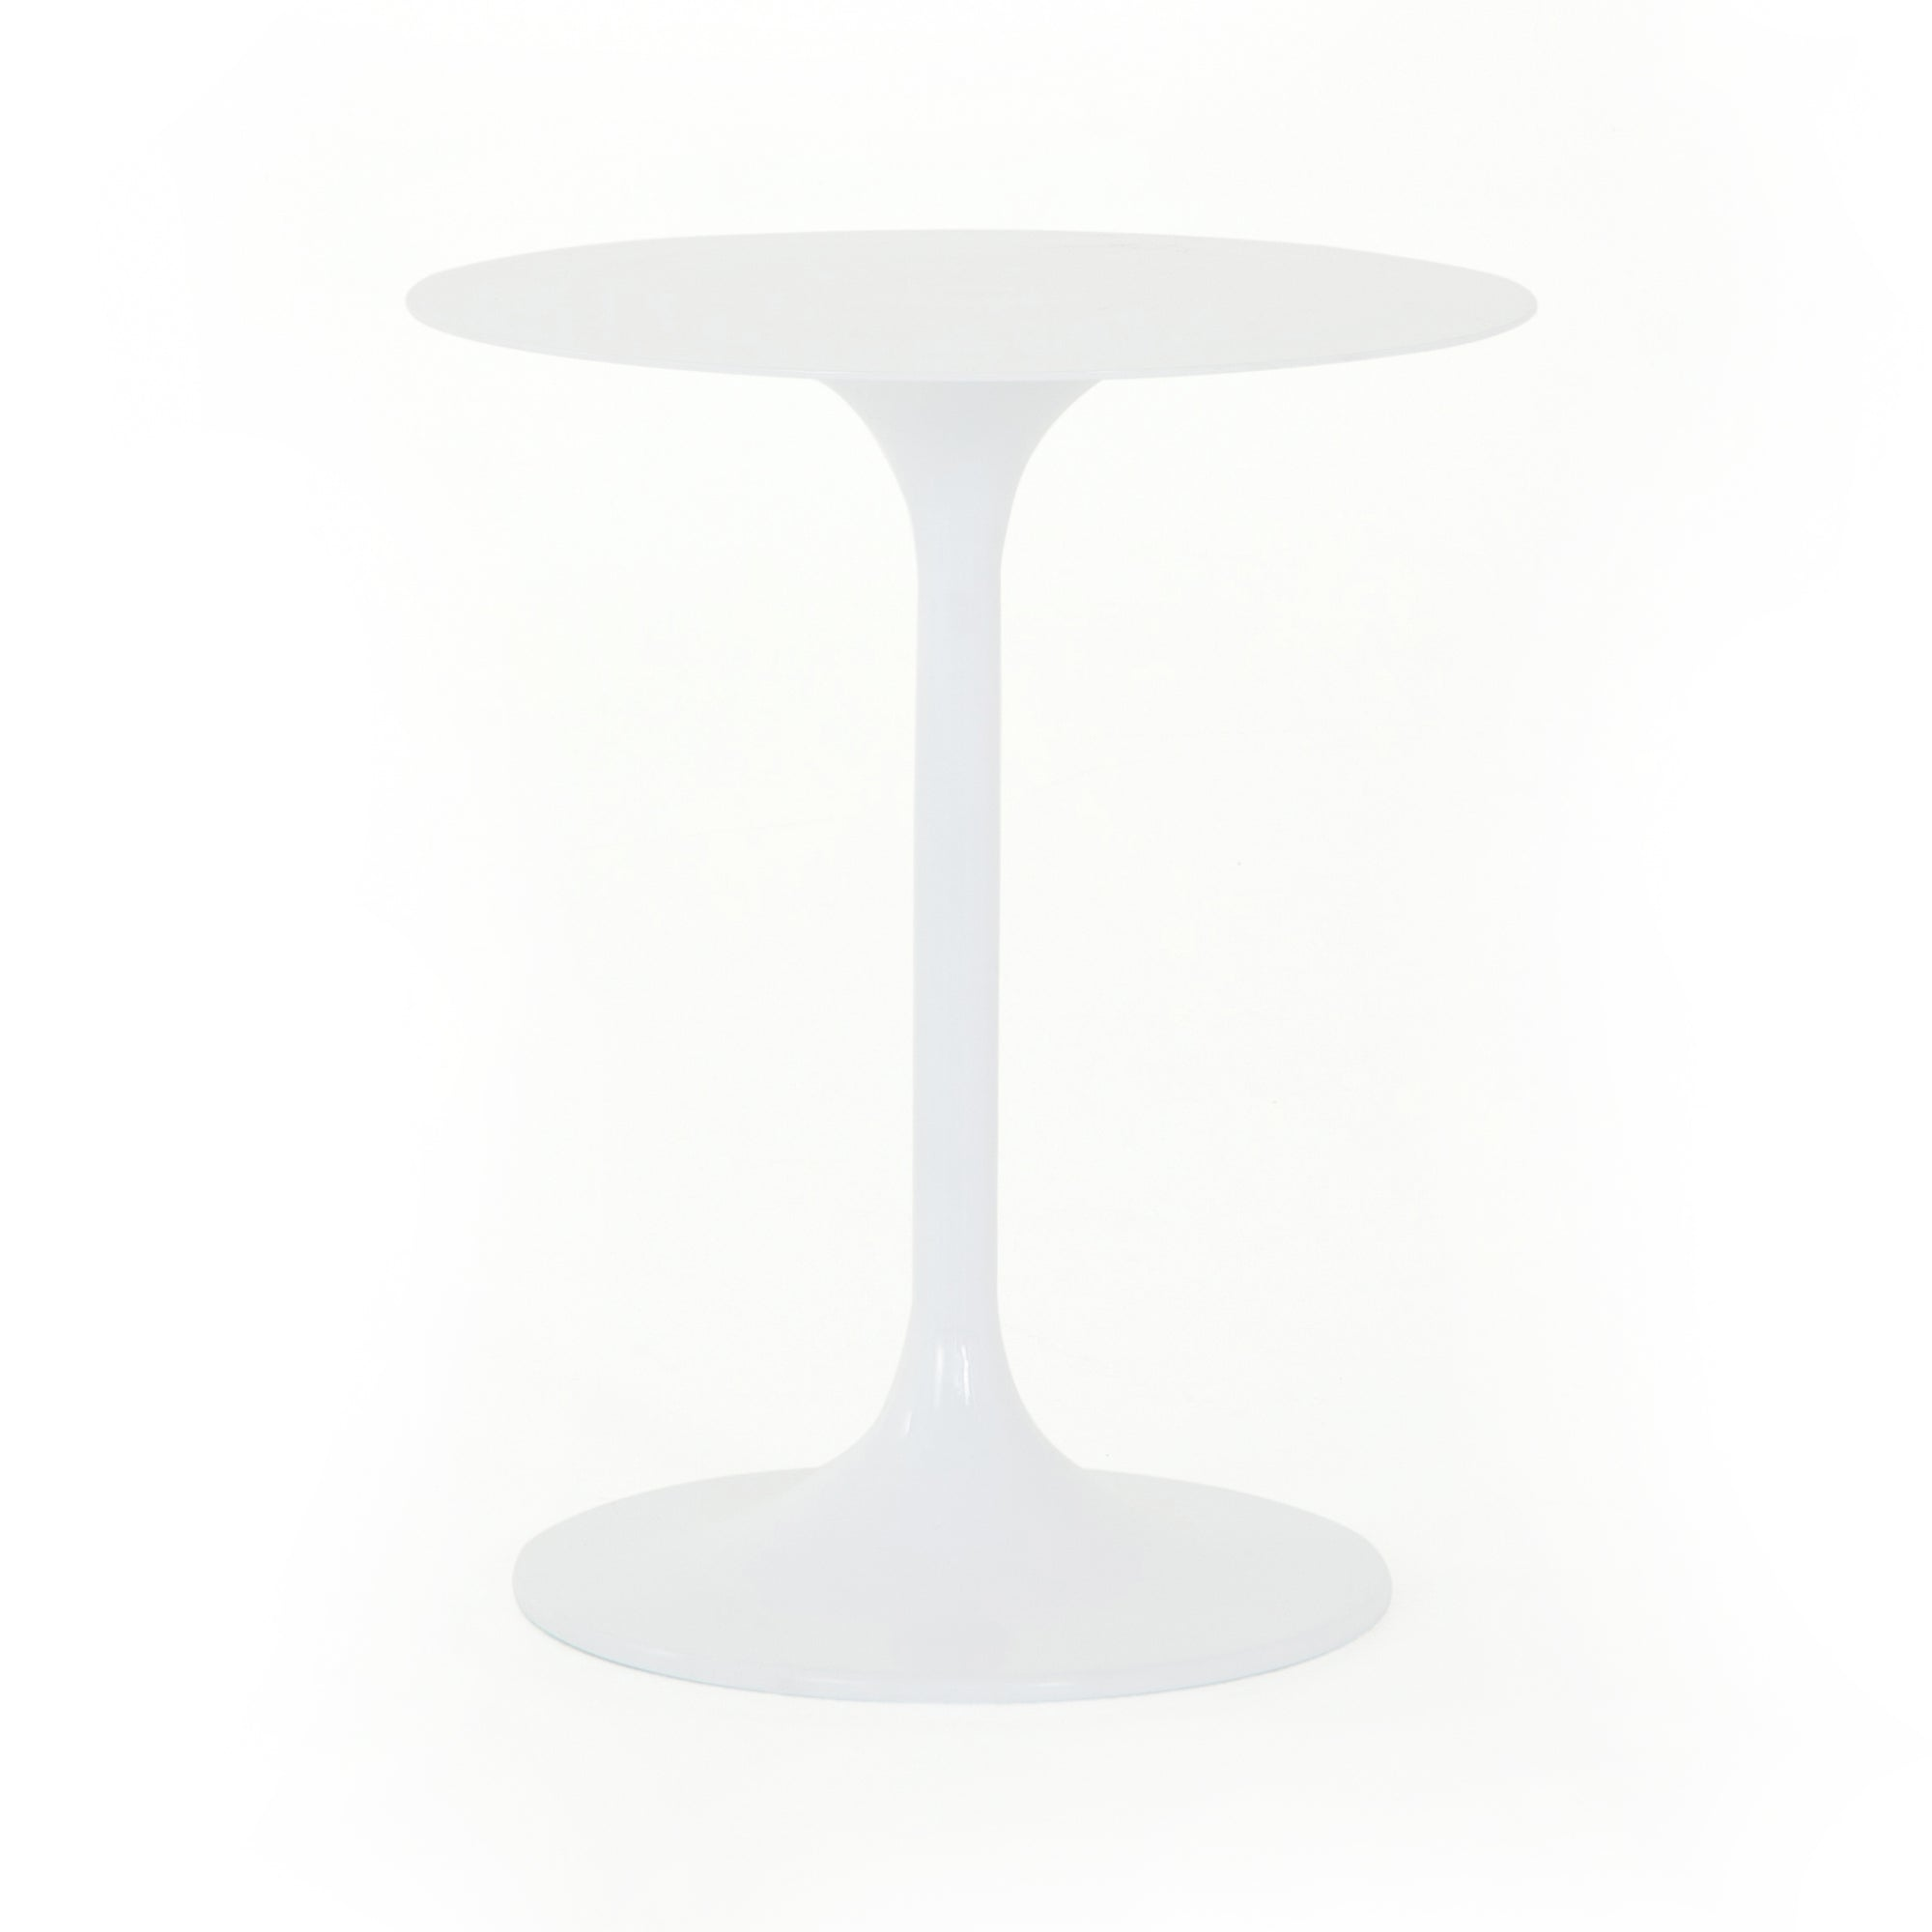 Tulip Side Table - White Aluminum